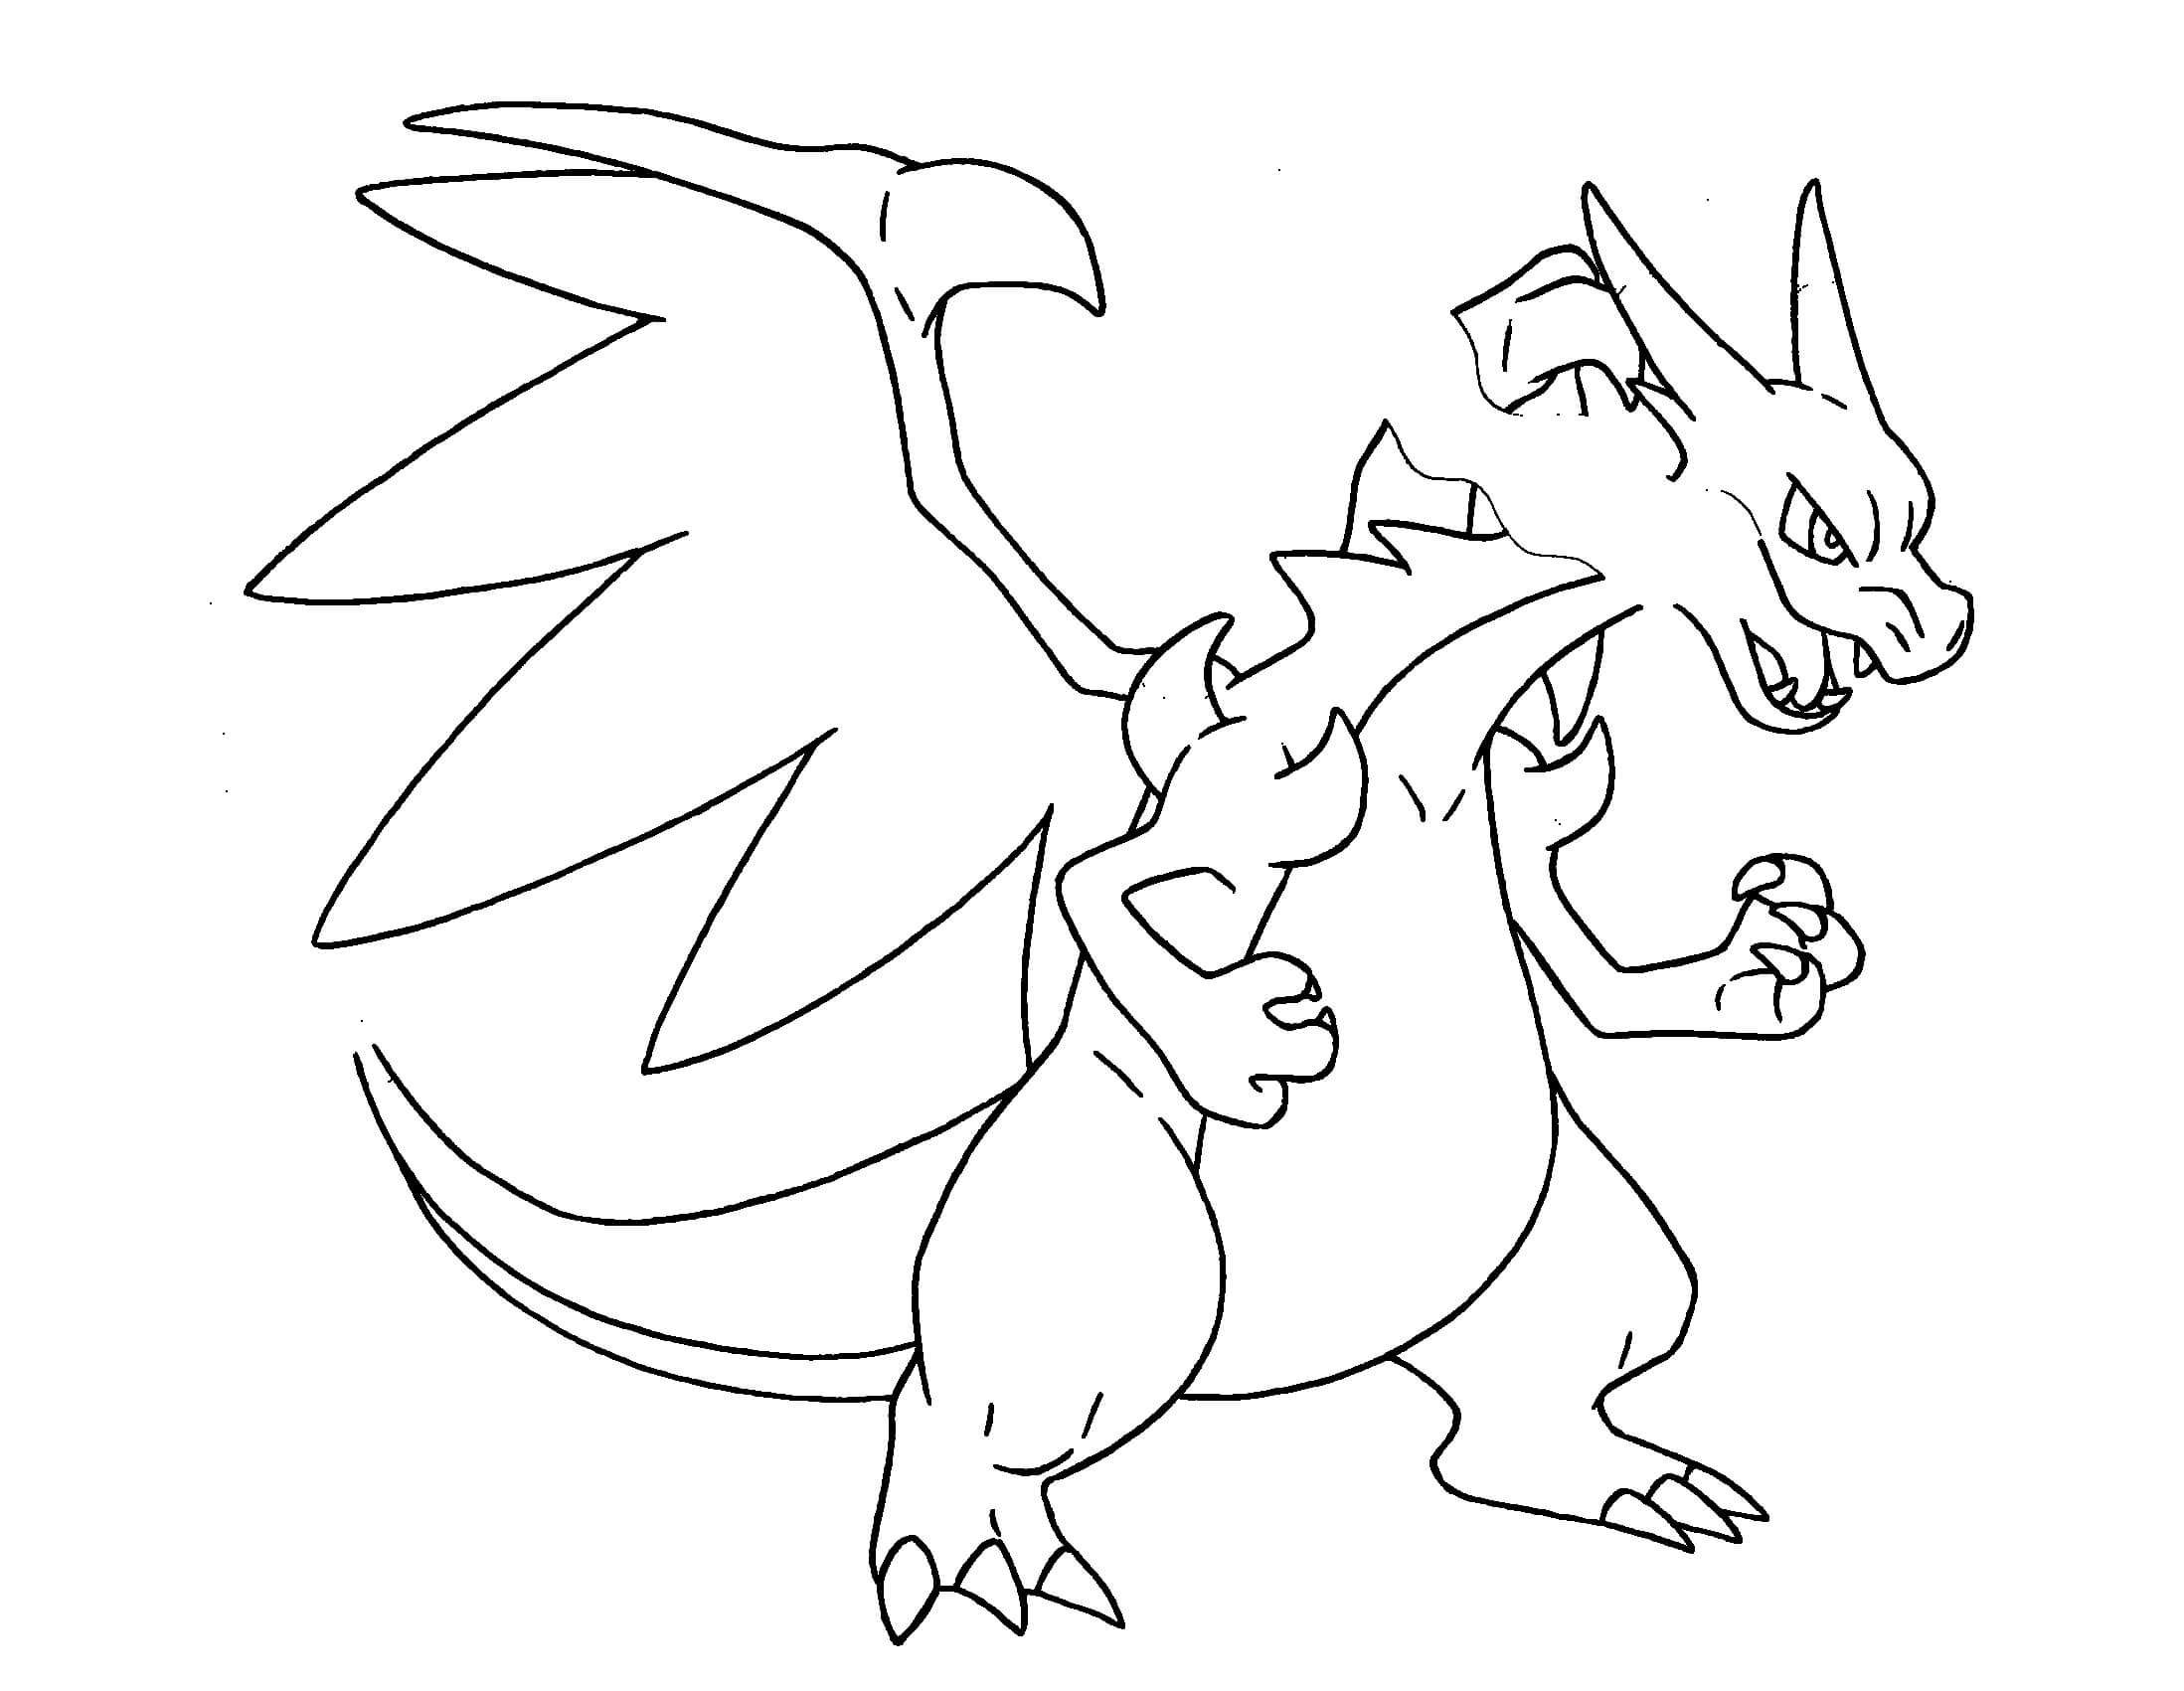 Pokemon coloring pages of mega lucario - Http Colorings Co Pokemon Coloring Pages Mega